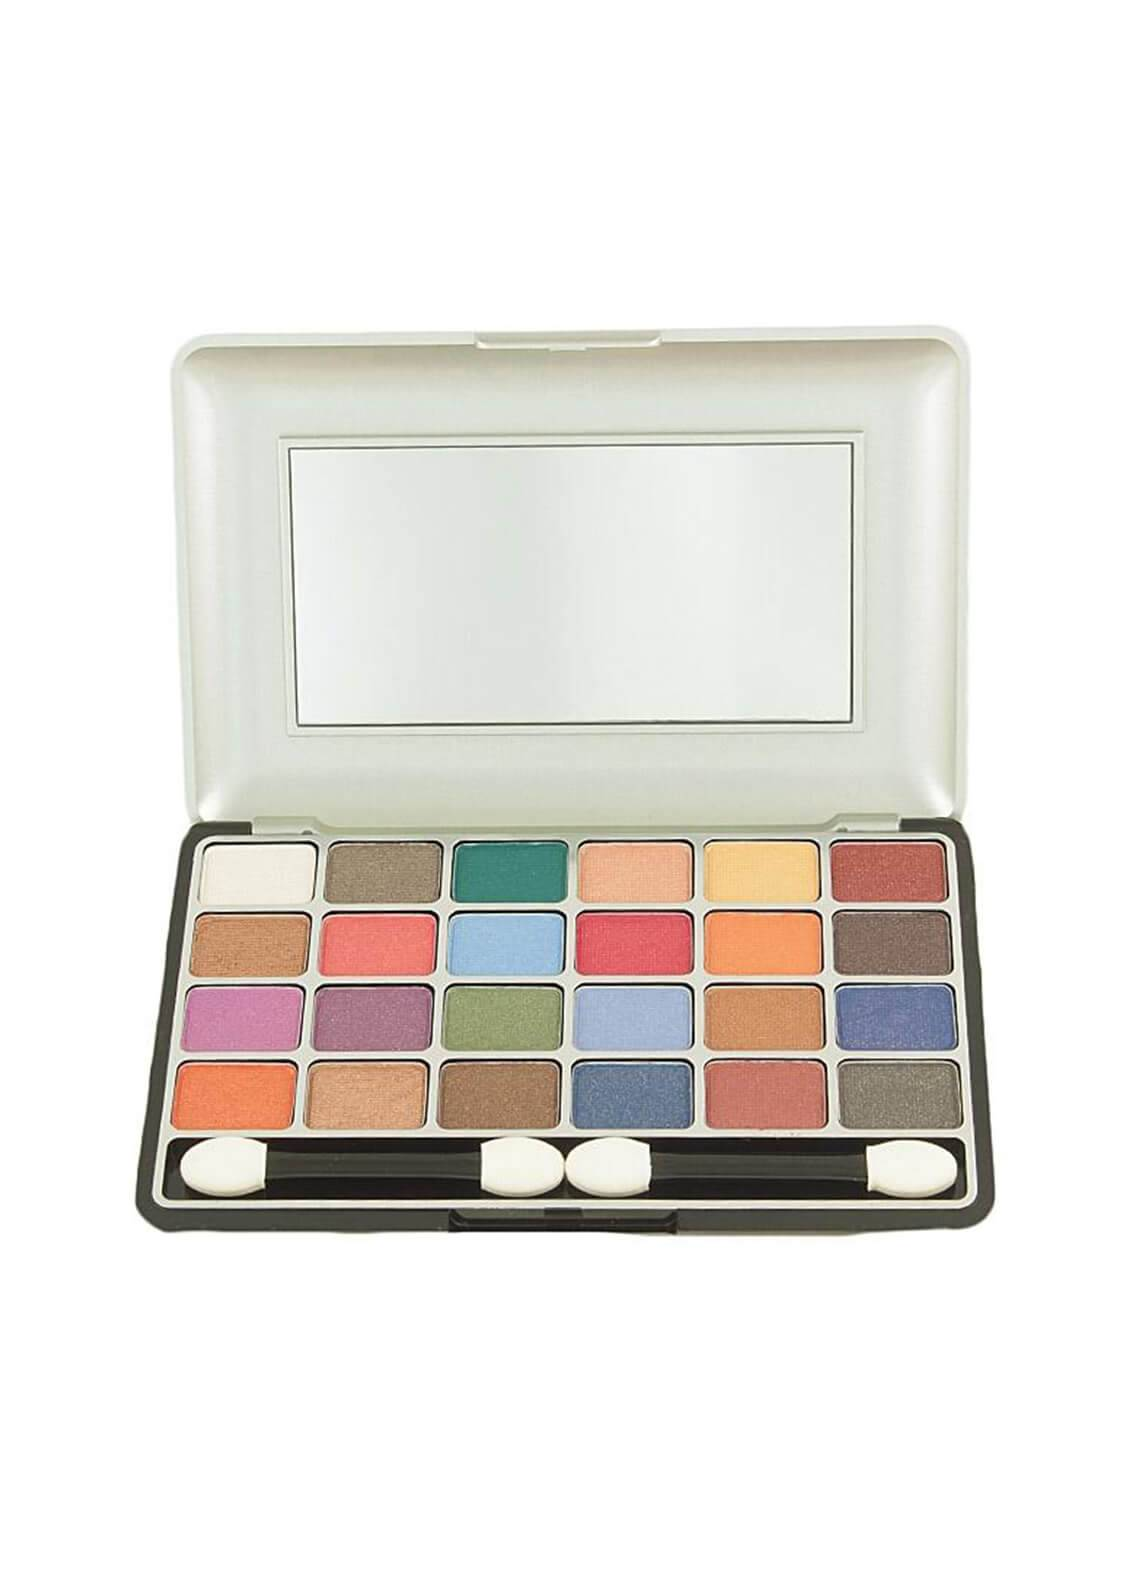 Sophia Asley Eye Shadow 24 Colors - 2